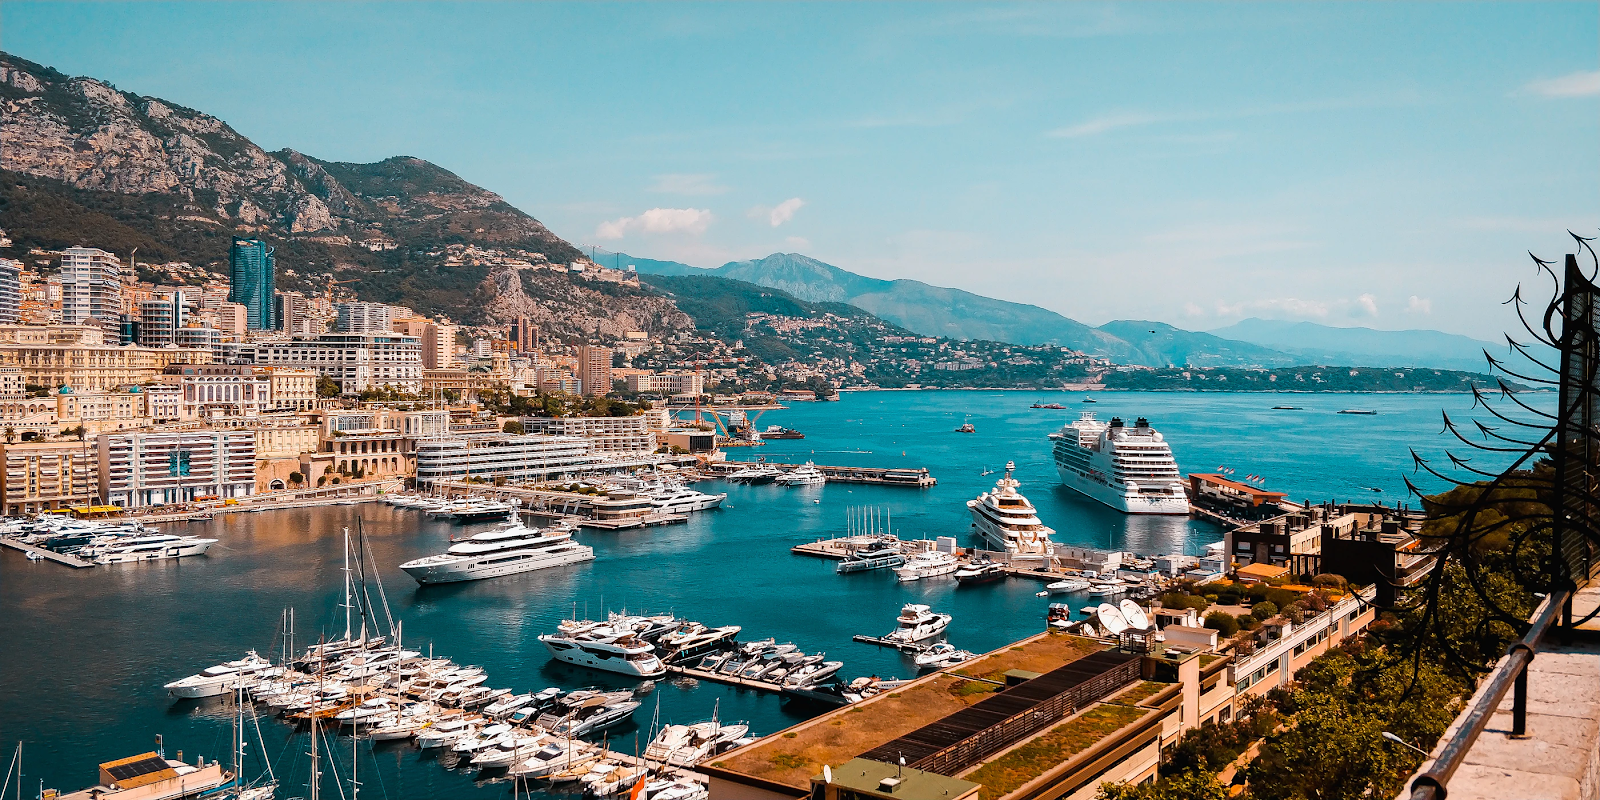 View of Monaco by the sea